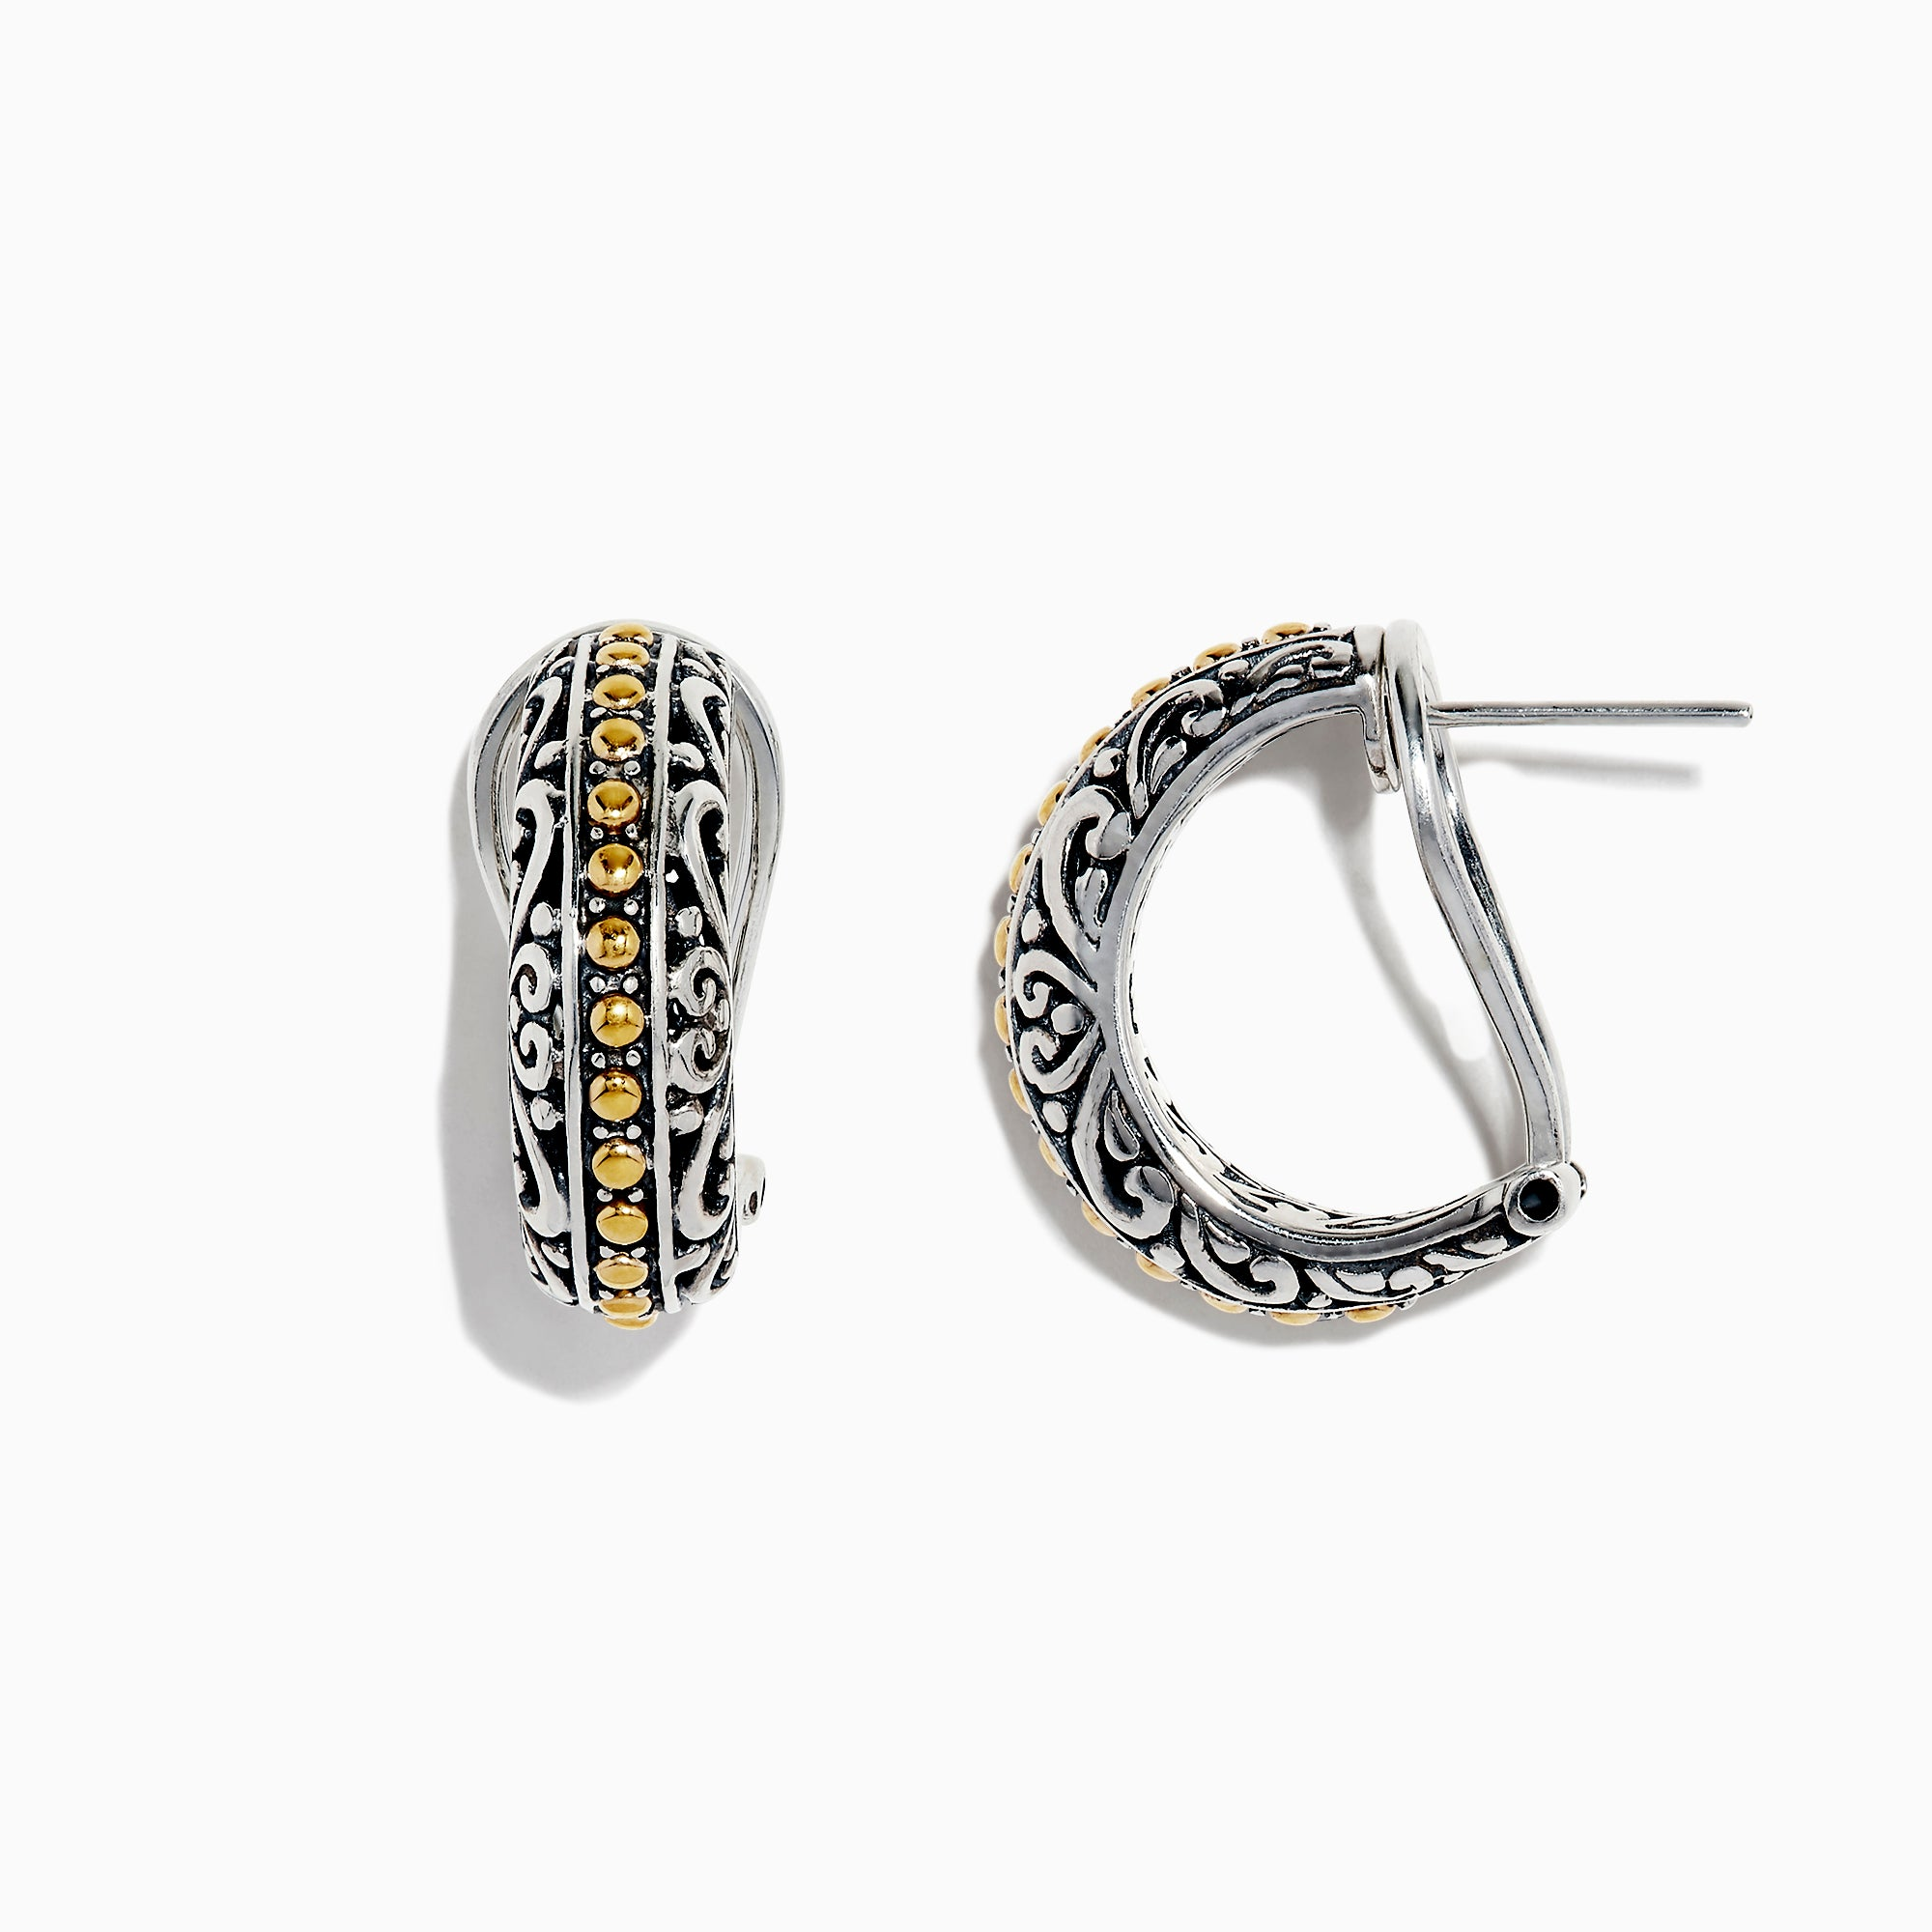 Effy 925 Sterling Silver and 18K Yellow Gold Earrings